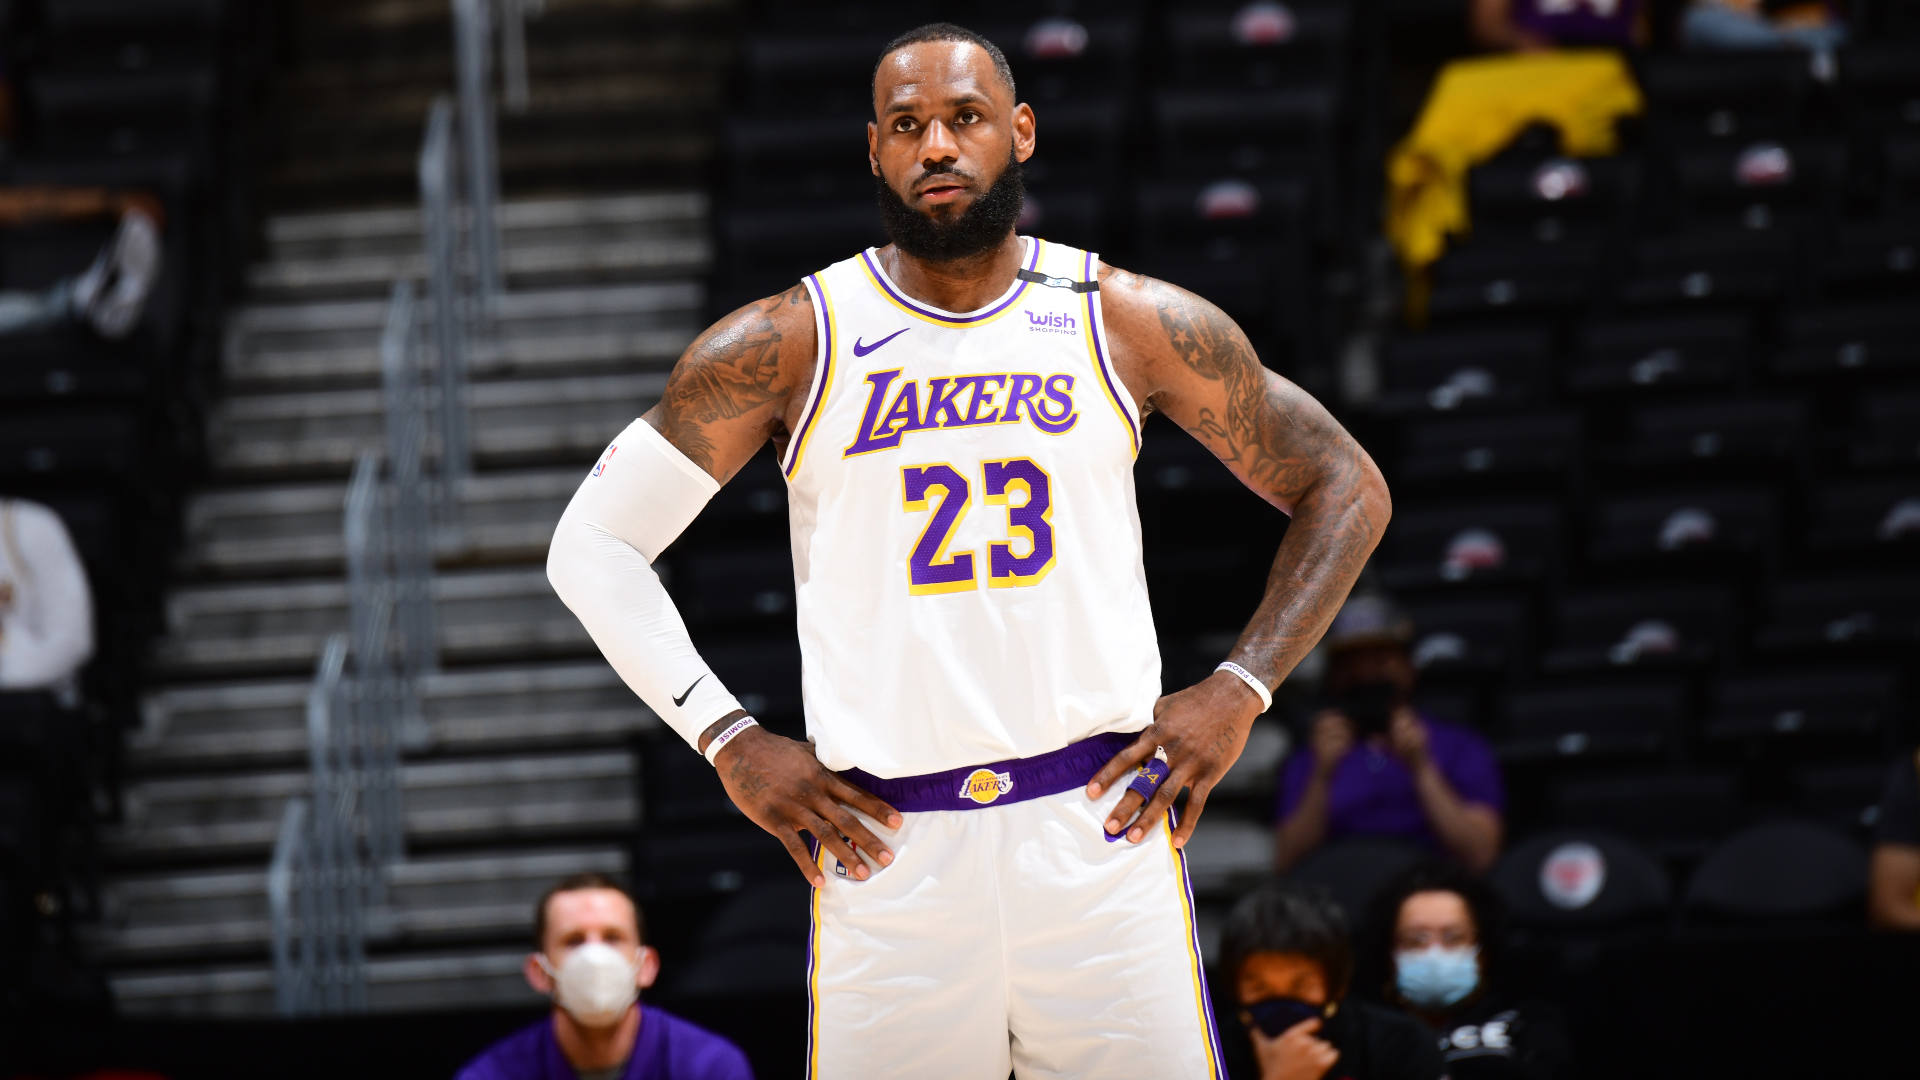 Lakers lose again with LeBron ankle worry, Giannis outduels Durant in Bucks-Nets battle